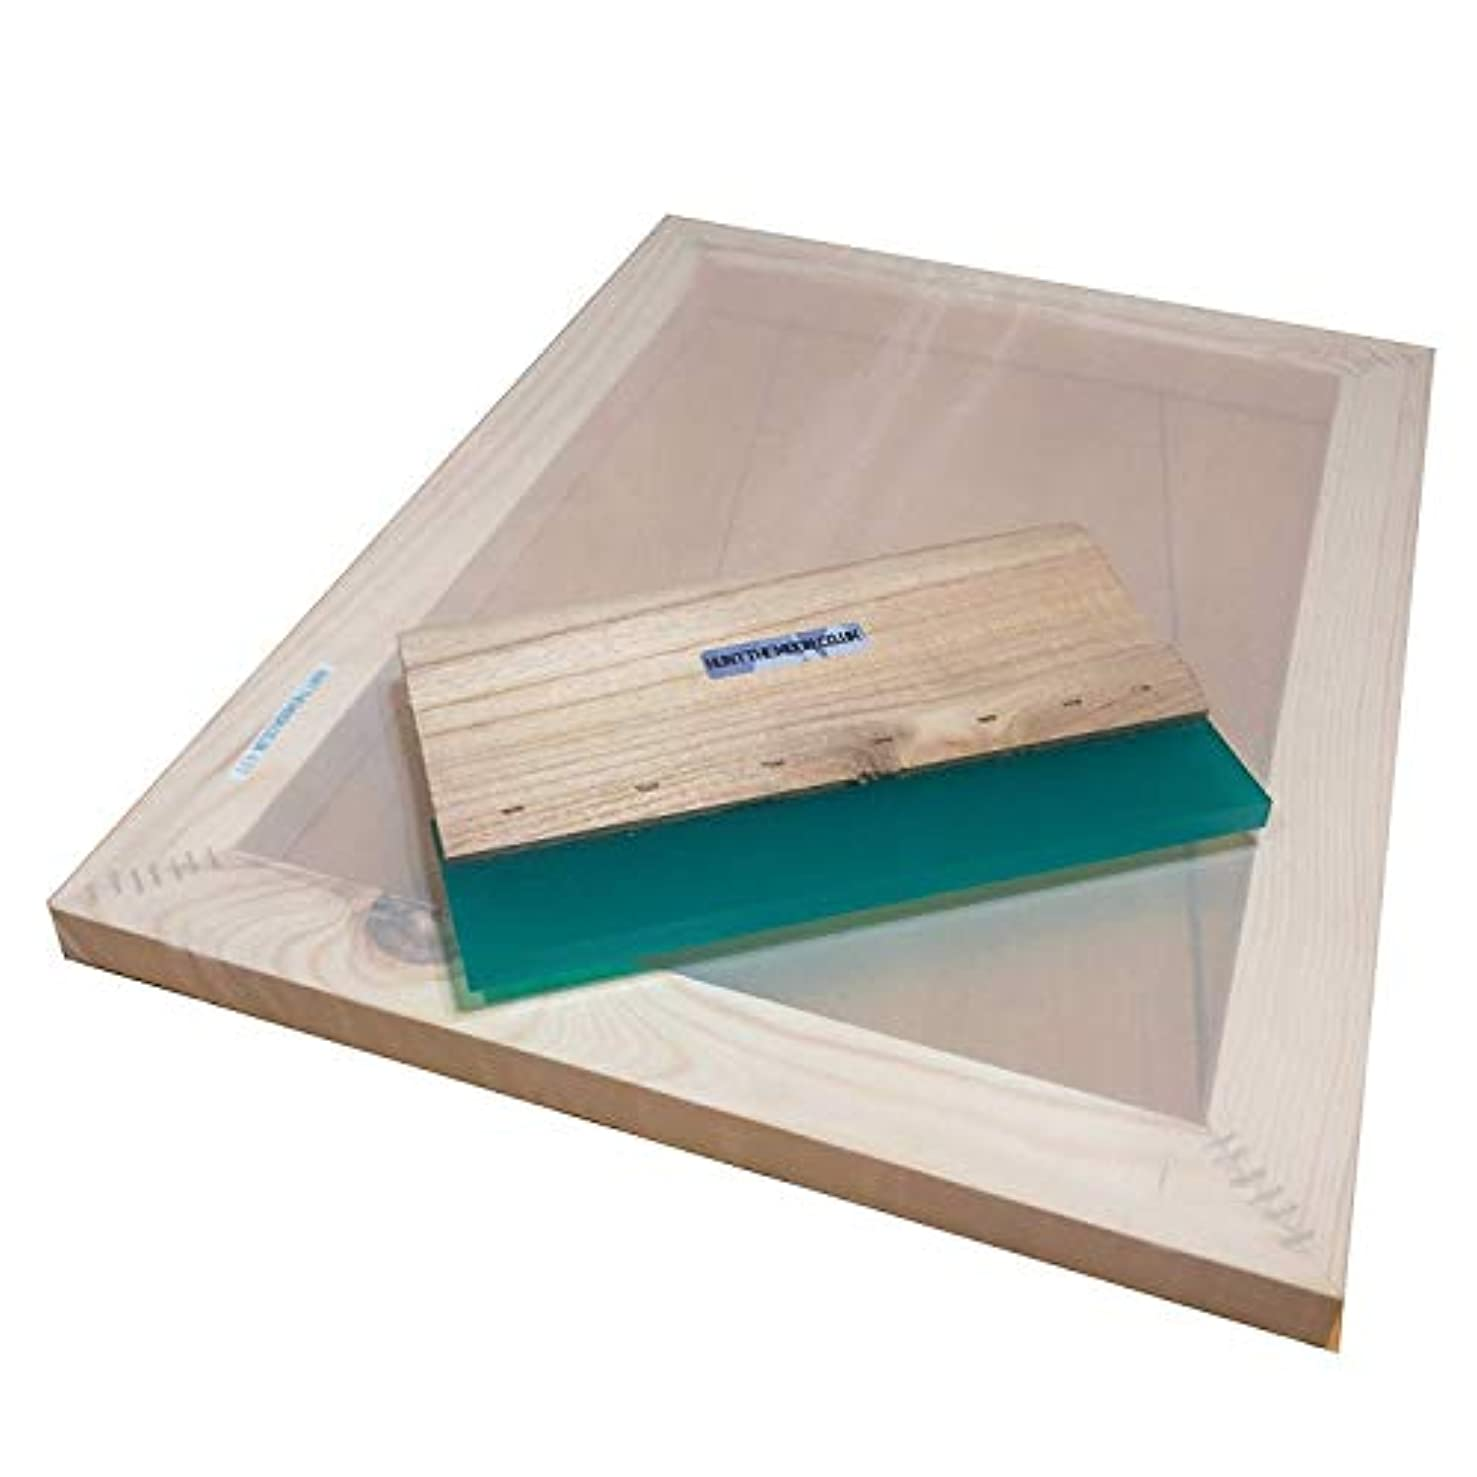 Hunt The Moon Screen Printing Frame and Squeegee Kit, Wooden, Large A3 77t